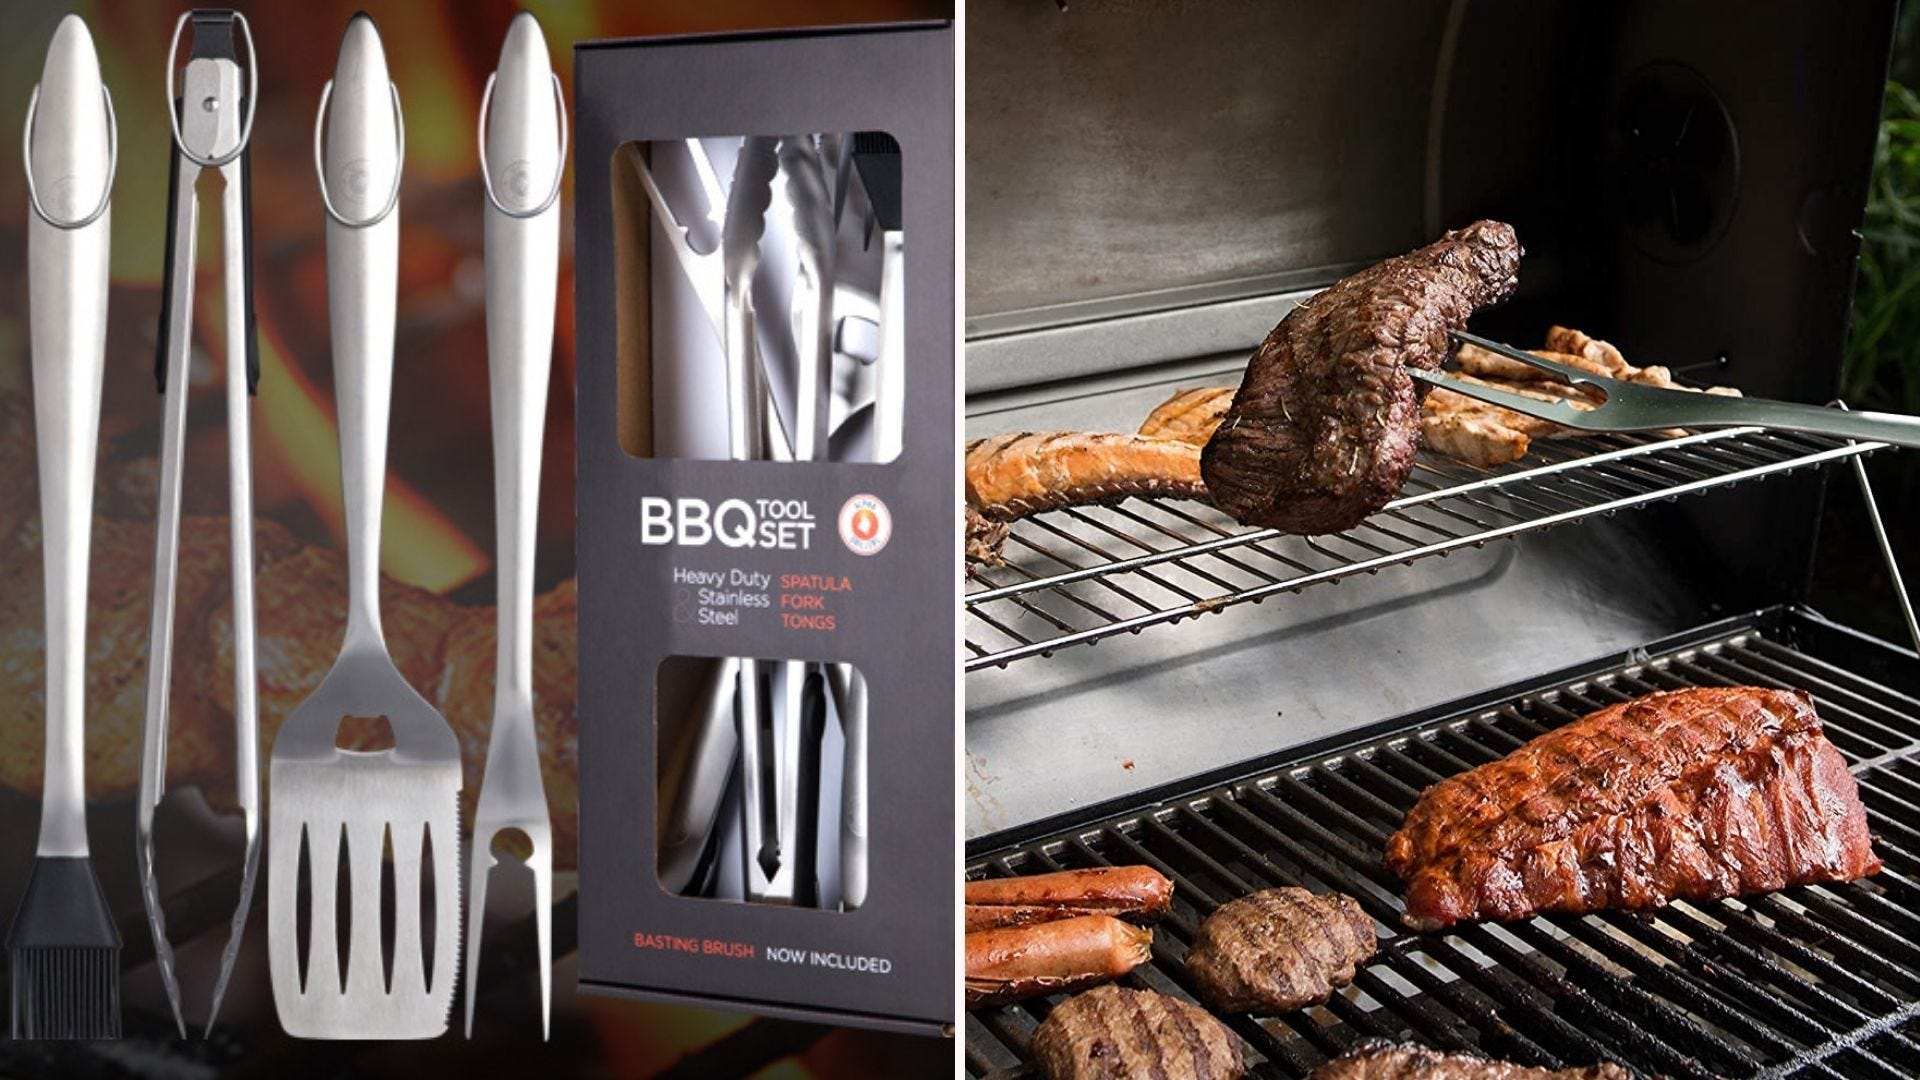 Two side by side images: The left image is of an Alpha Grillers BBQ tool set and the right image is of someone using the grill fork to hold a new york strip steak.